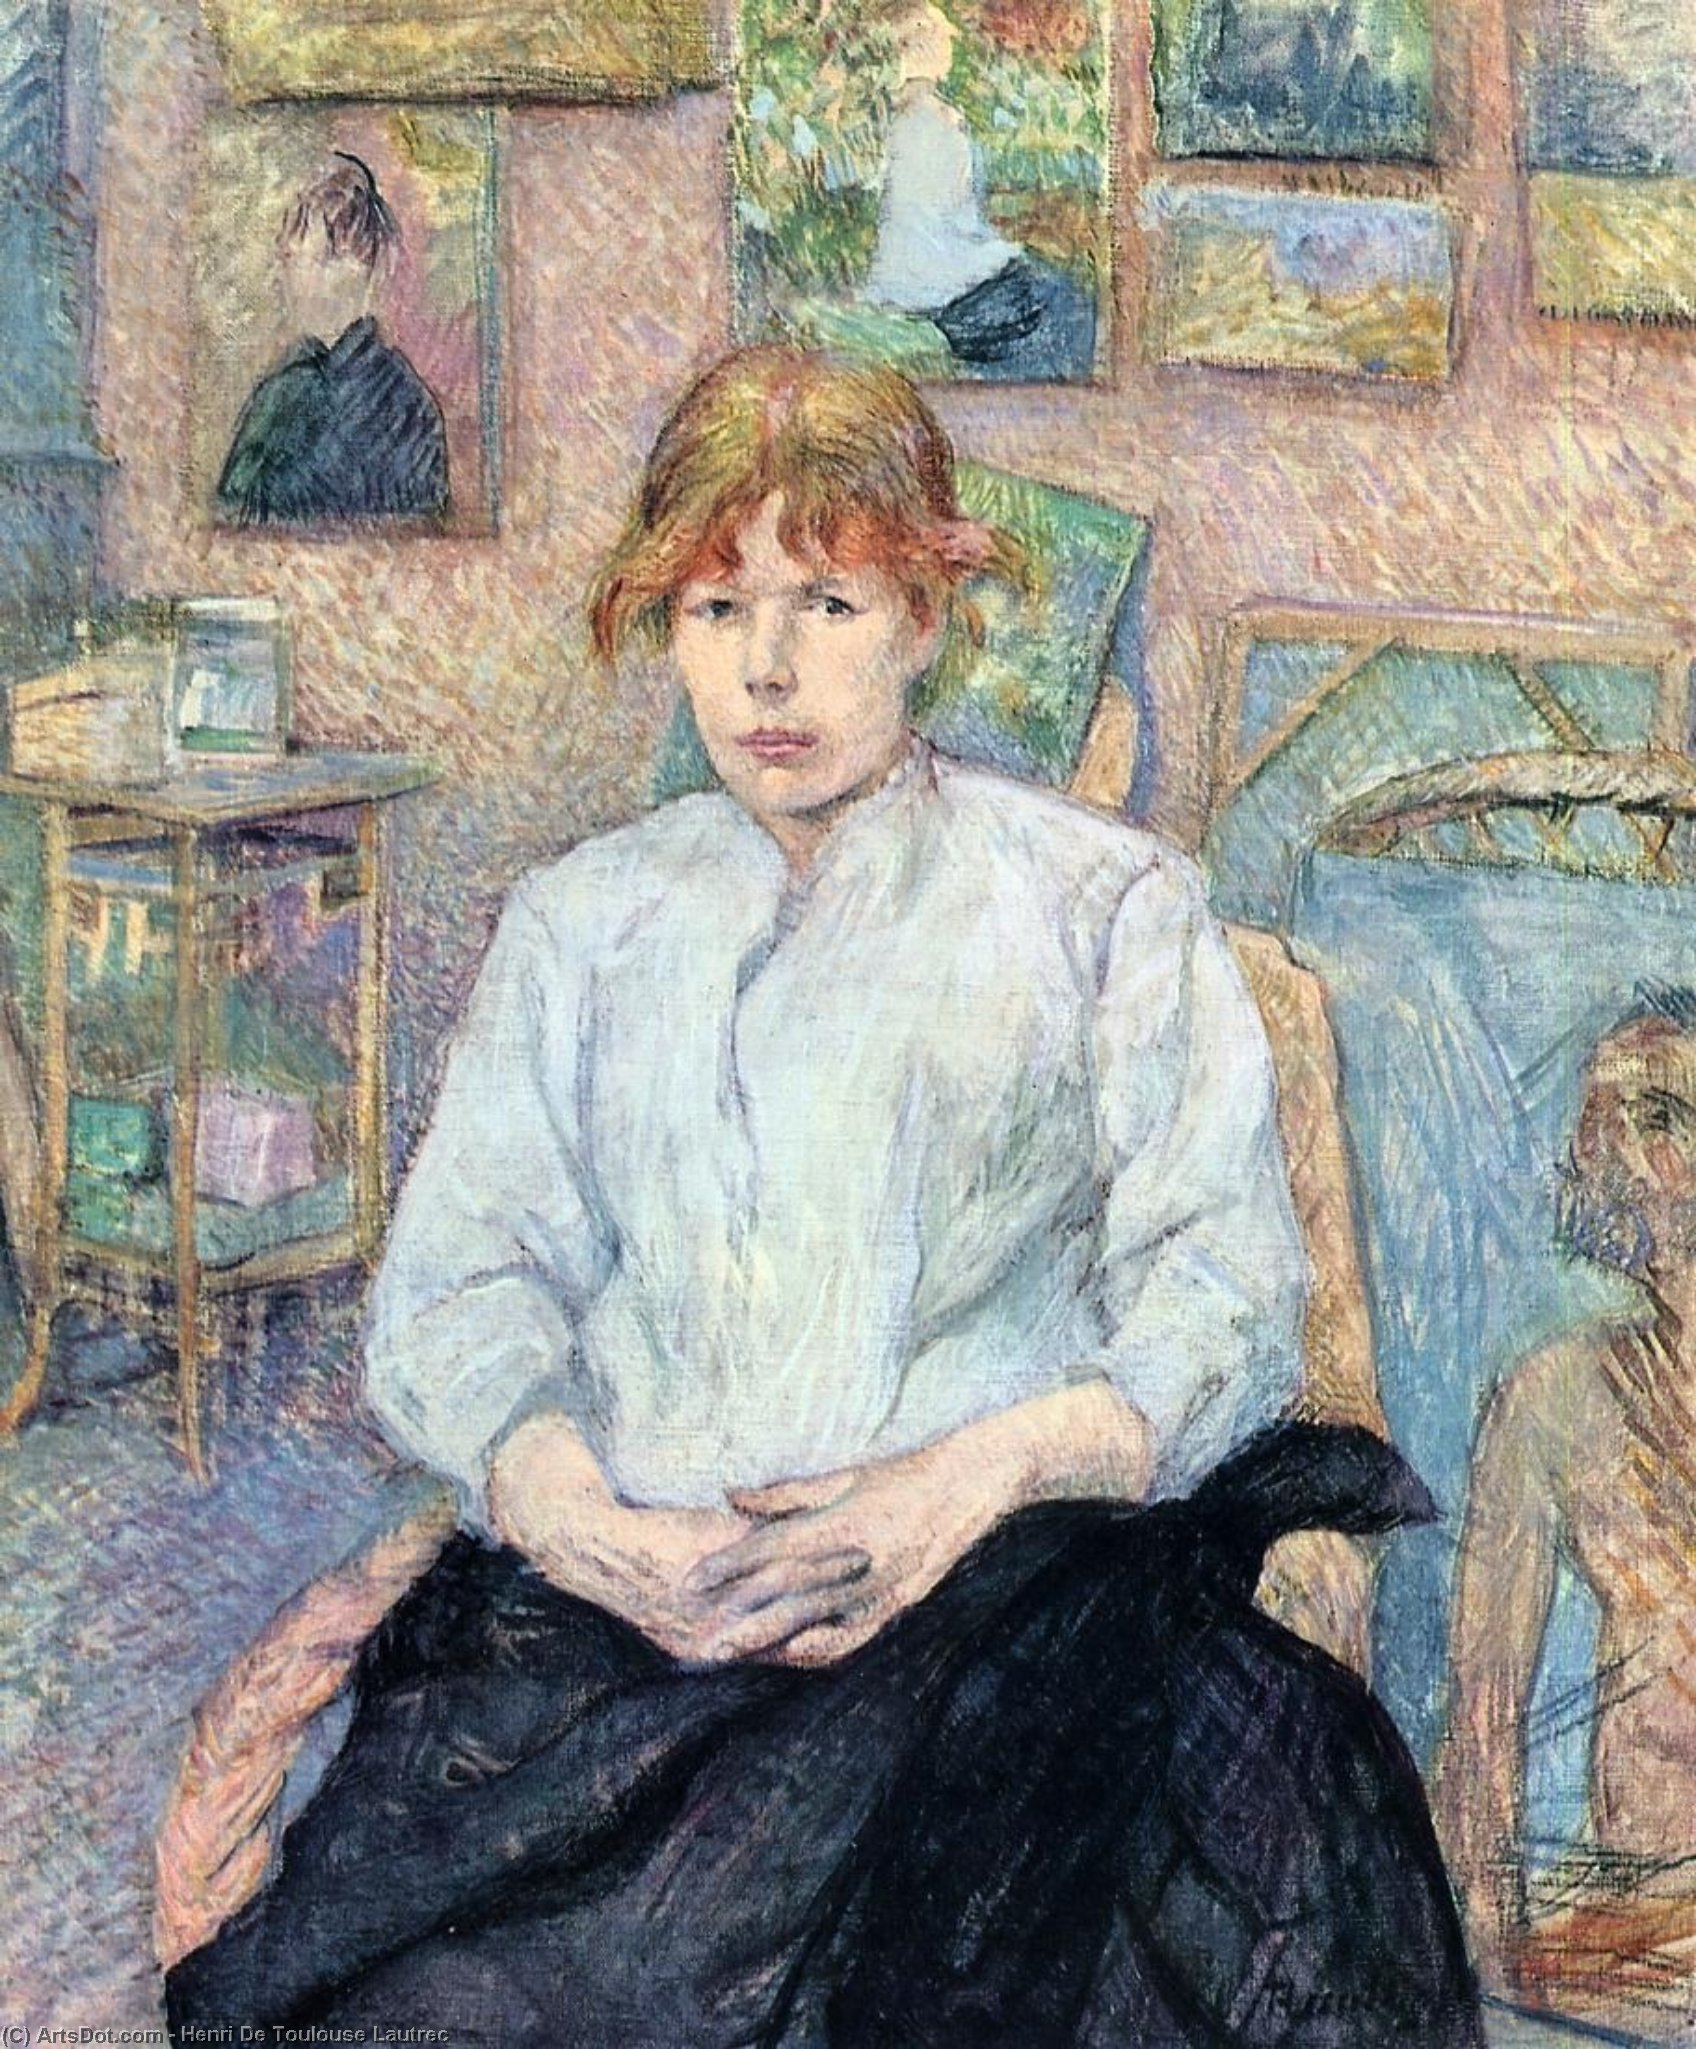 The Redhead with a White Blouse, Oil On Canvas by Henri De Toulouse Lautrec (1864-1901, France)